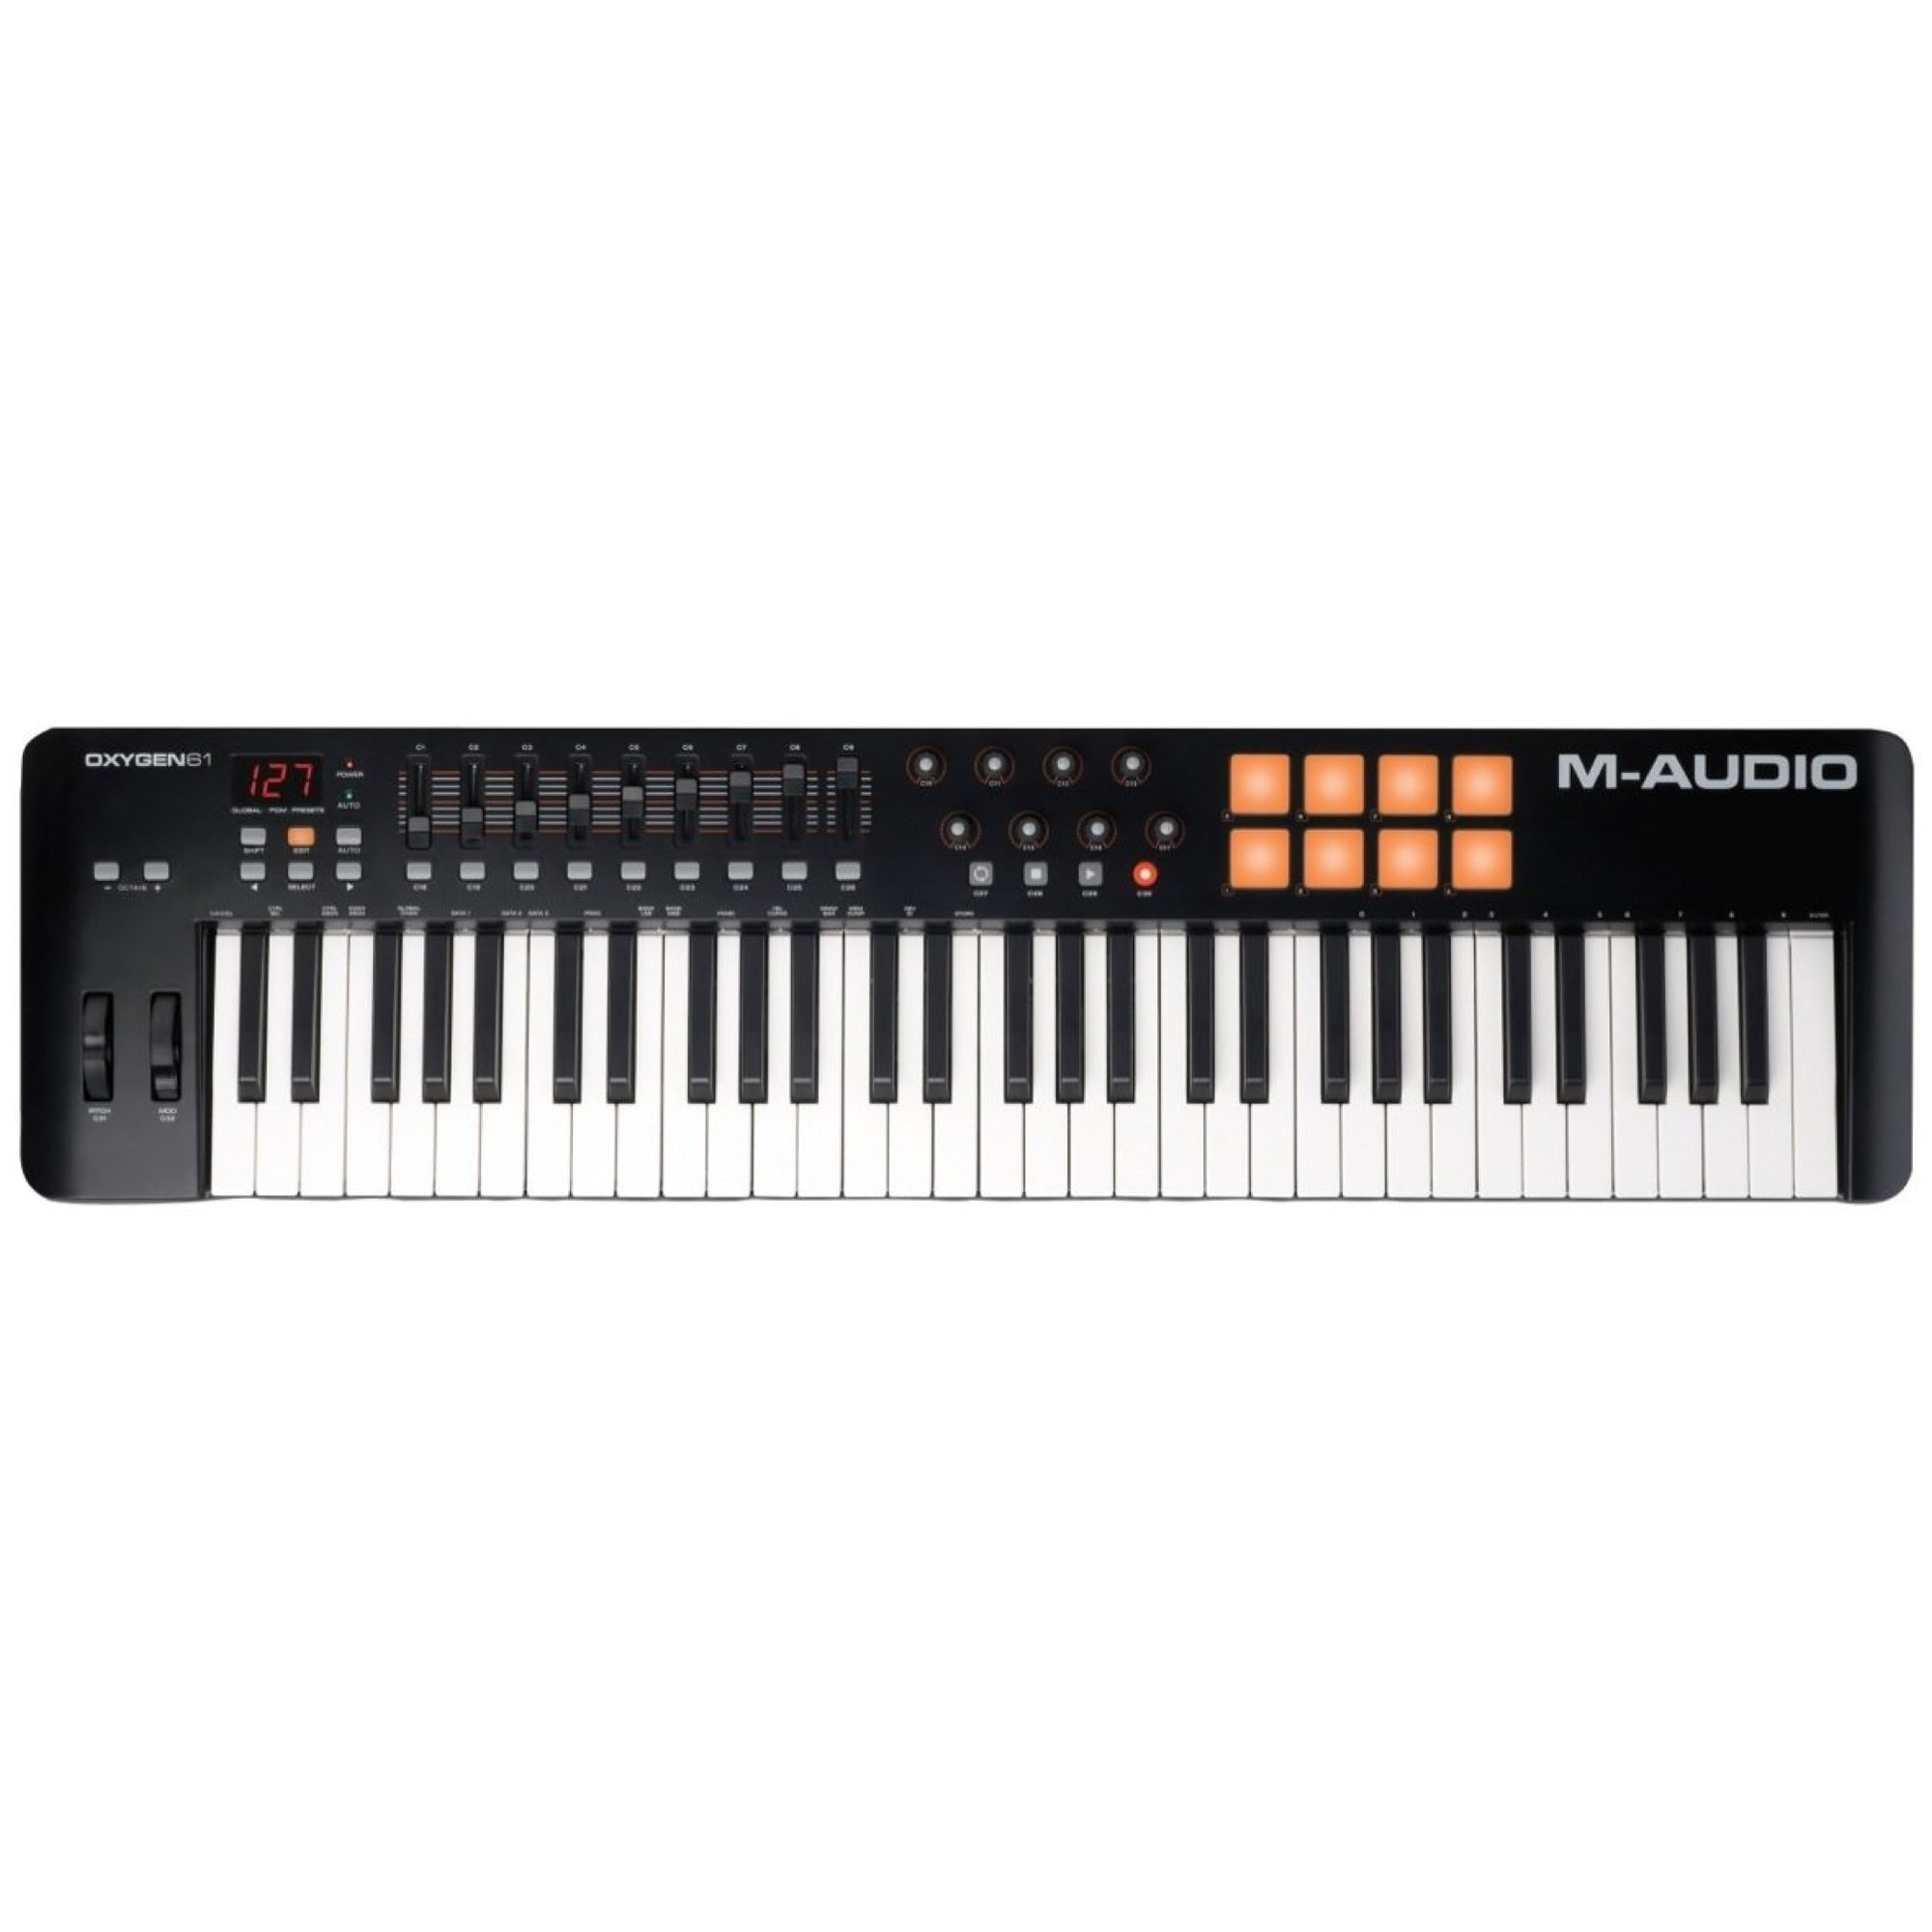 M-Audio Oxygen 61 IV USB MIDI Keyboard Controller, 61-Key